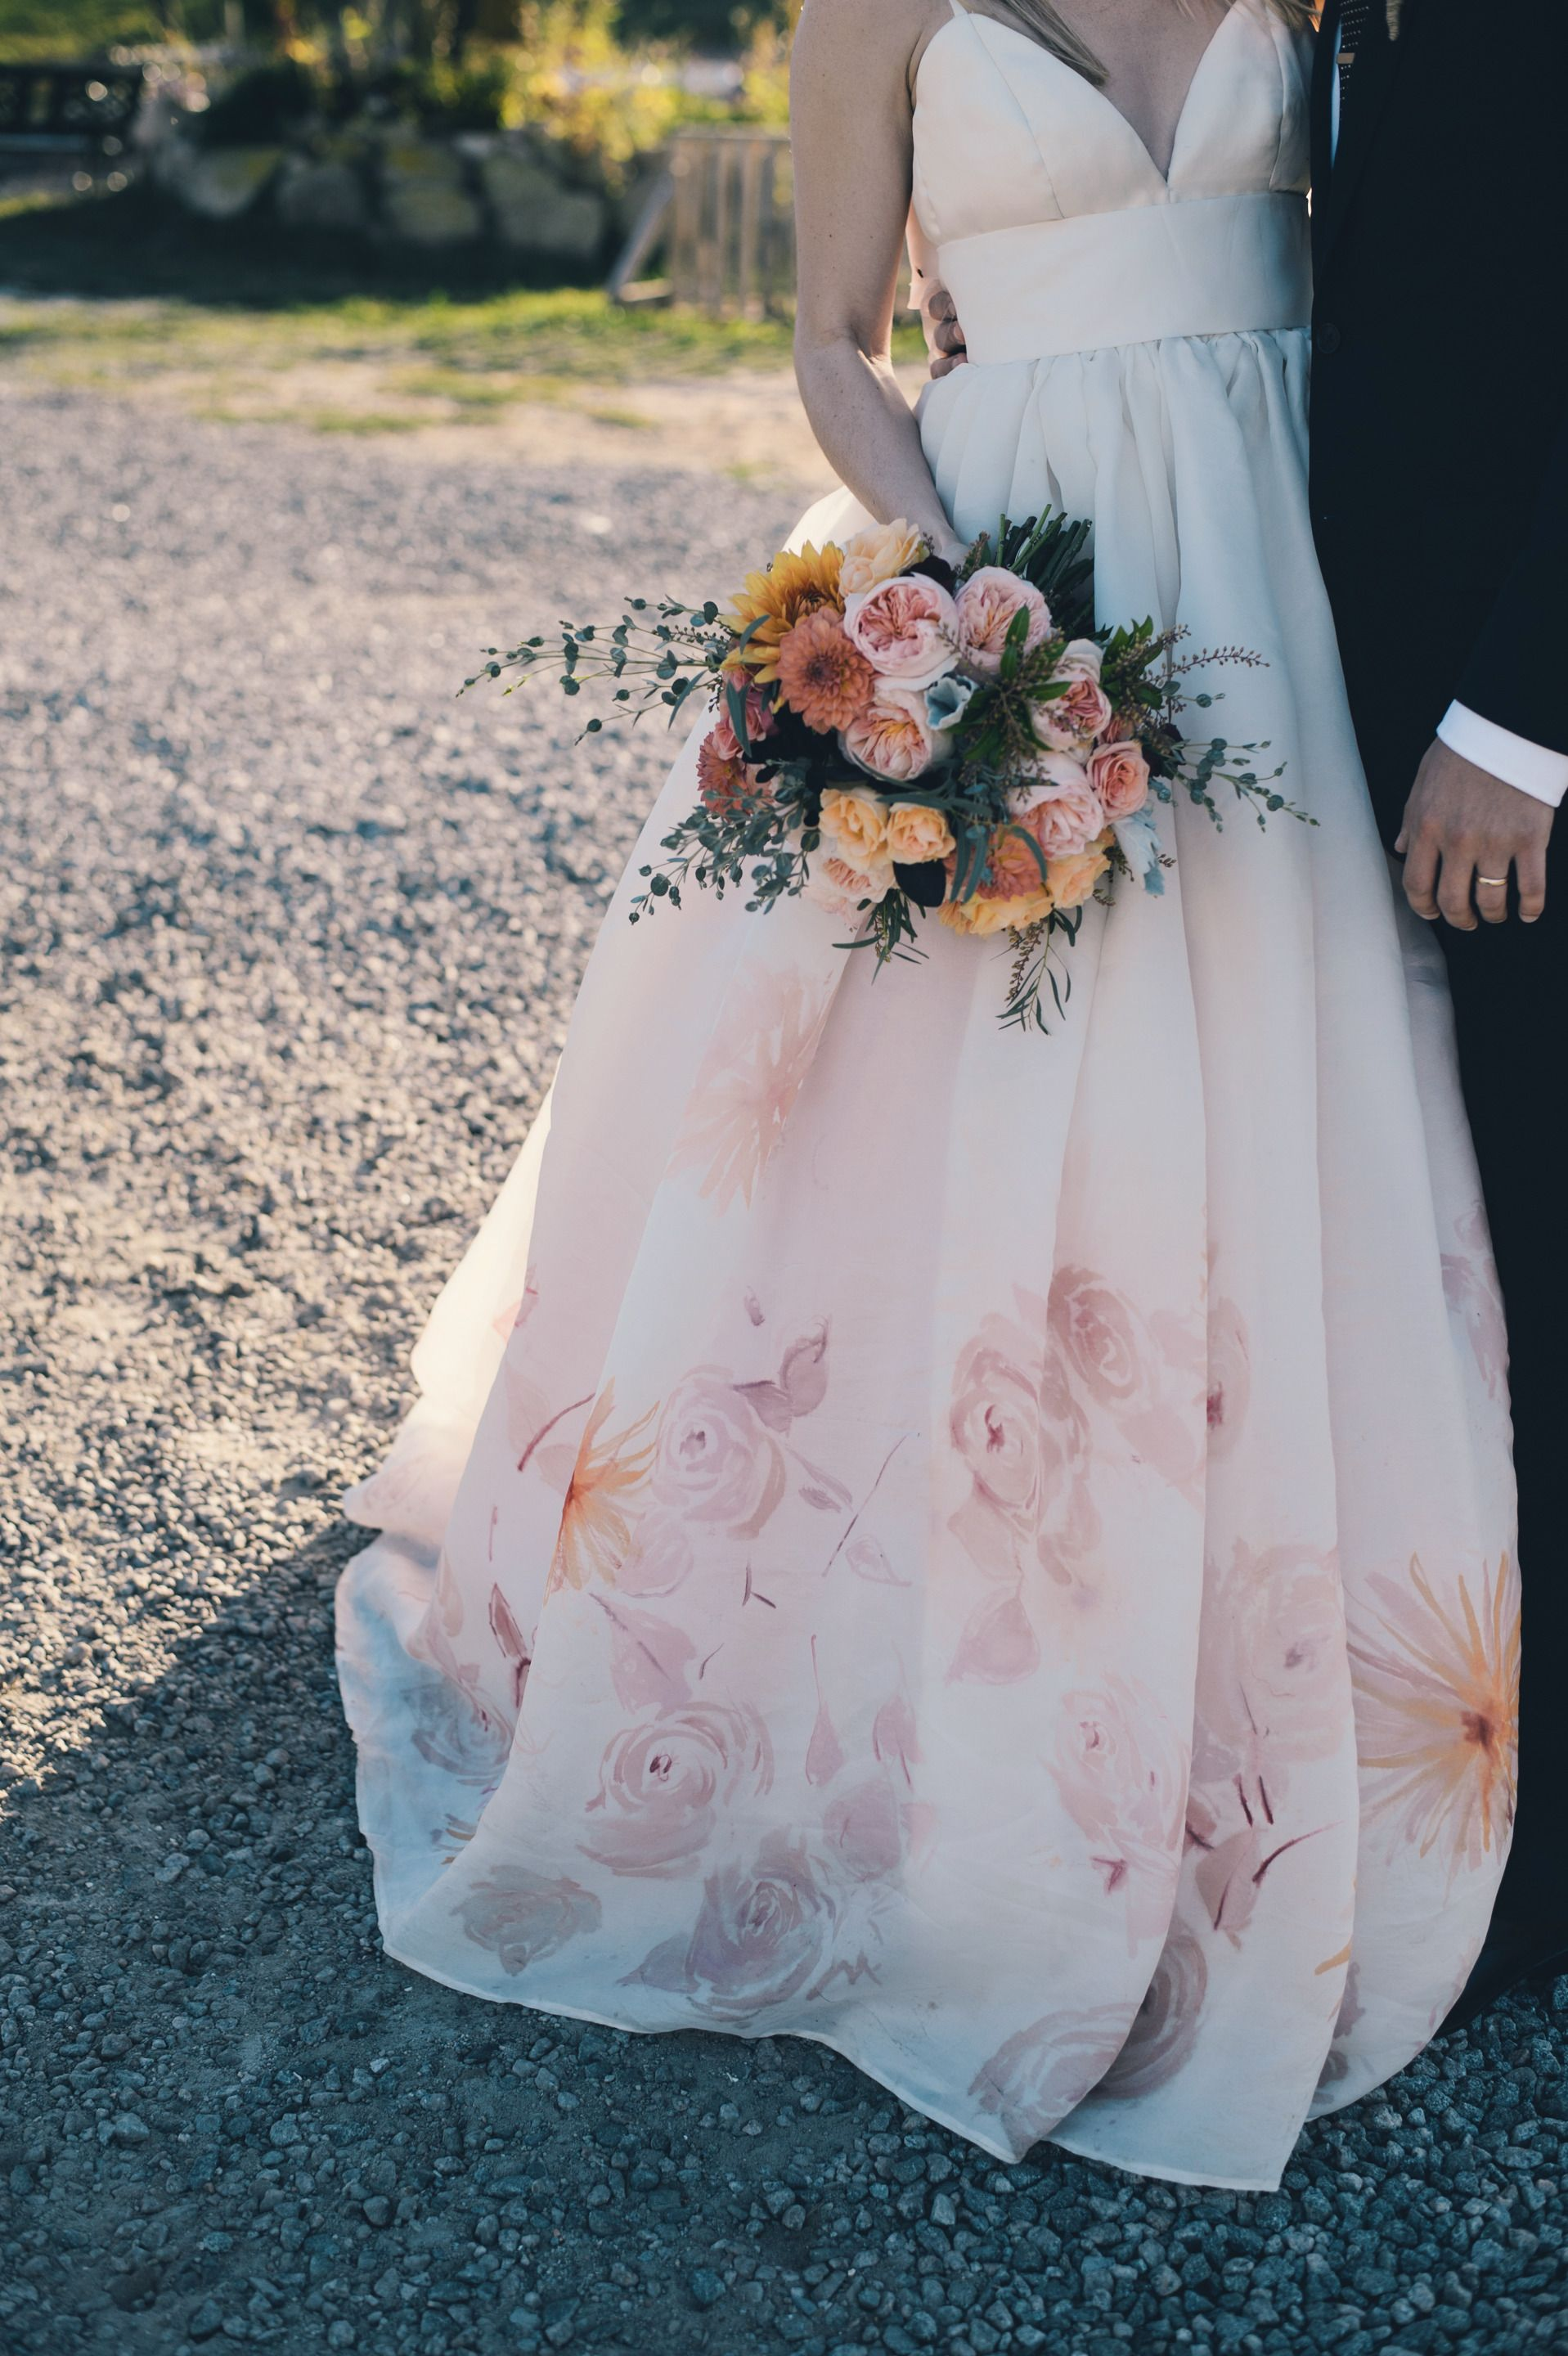 Diy Wedding On Block Island With A Watercolored Gown Wedding